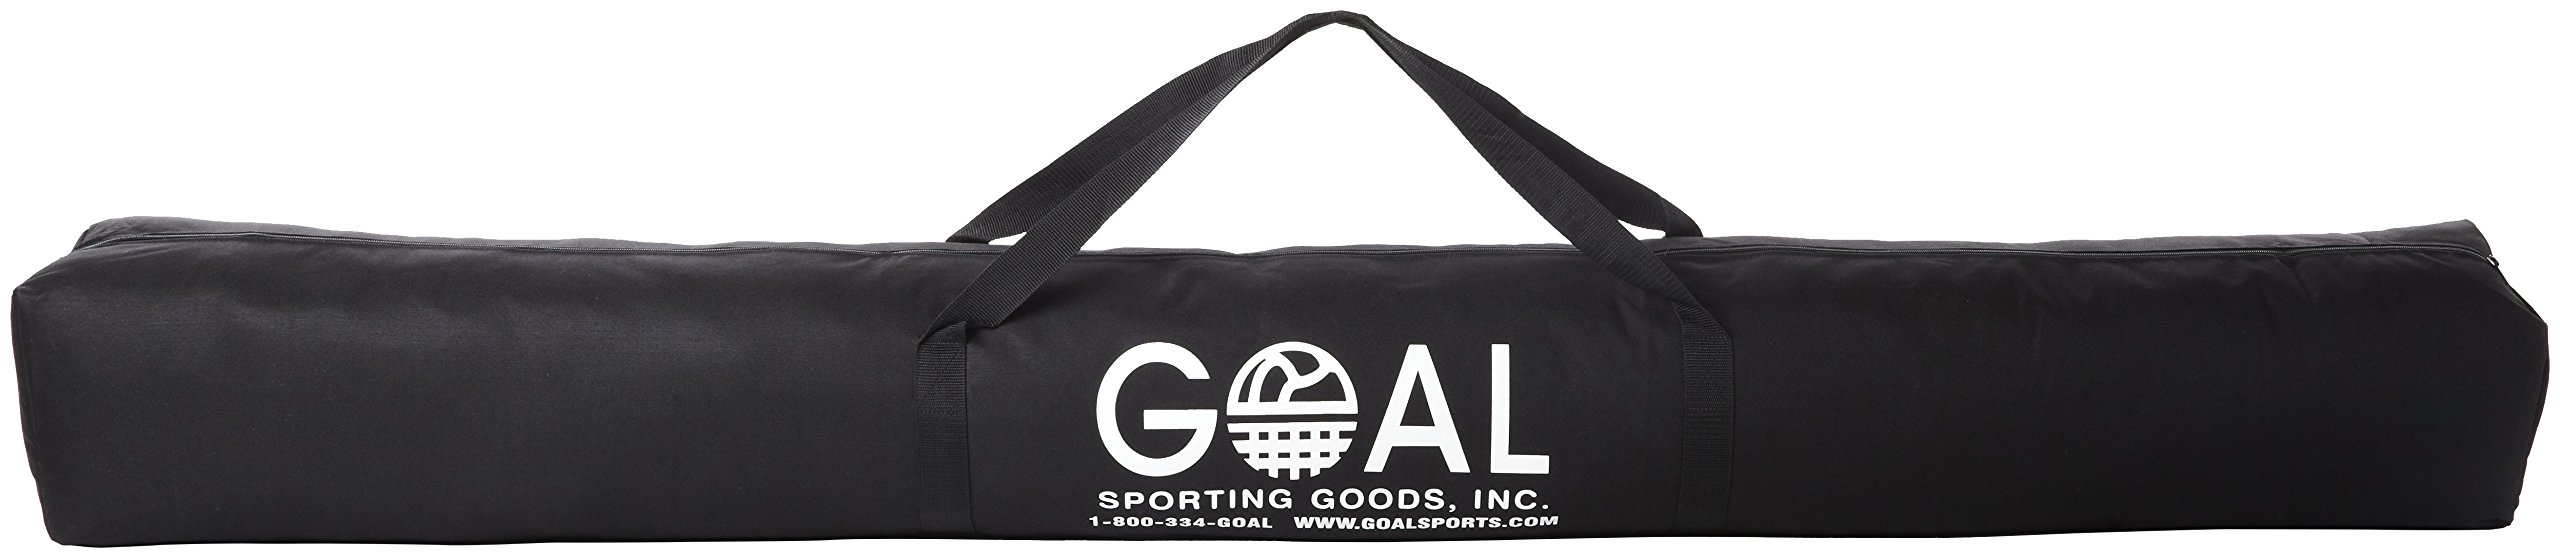 Goal Sporting Goods Training Carry Bag